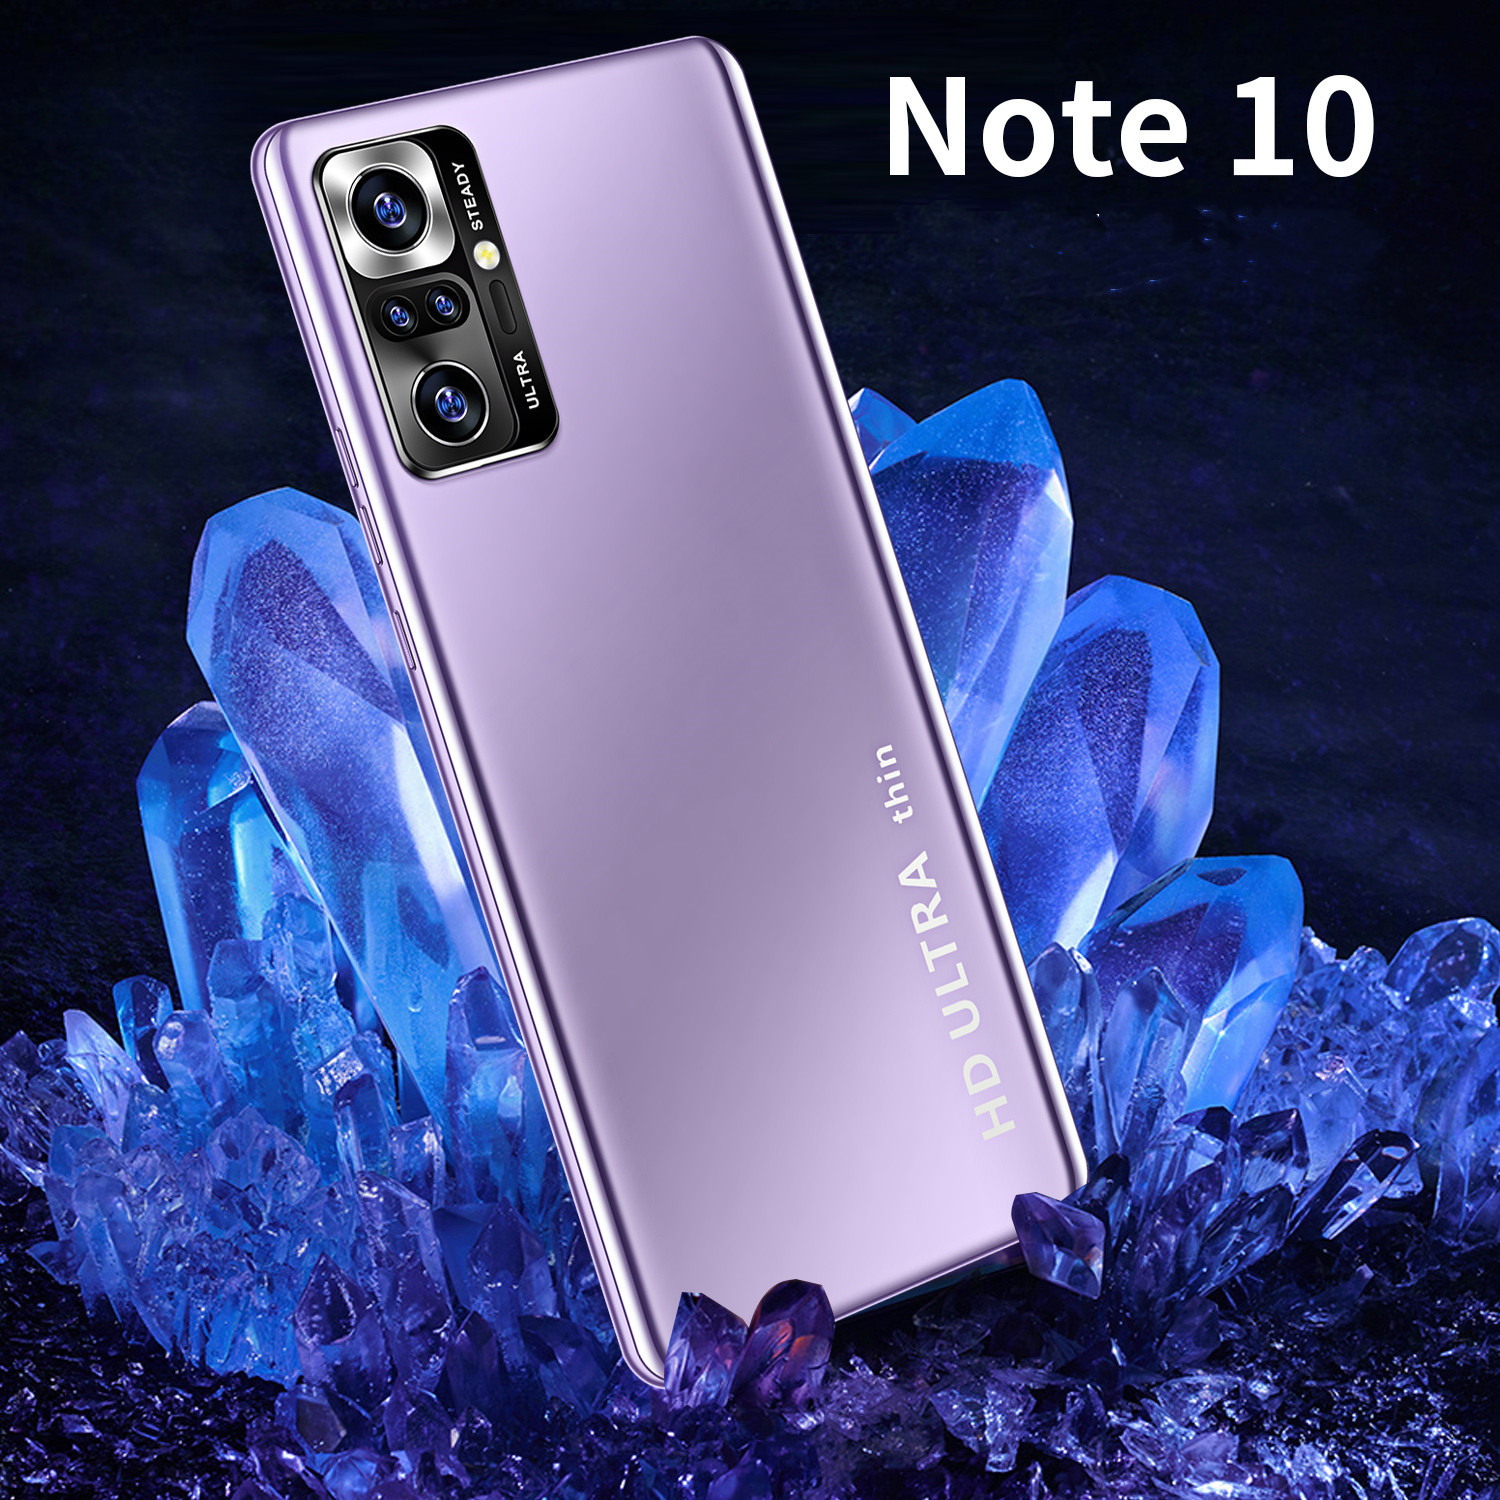 Cross border mobile phone new note10 Pro Max domestic android Unicom low-cost Southeast Asian Smartphone